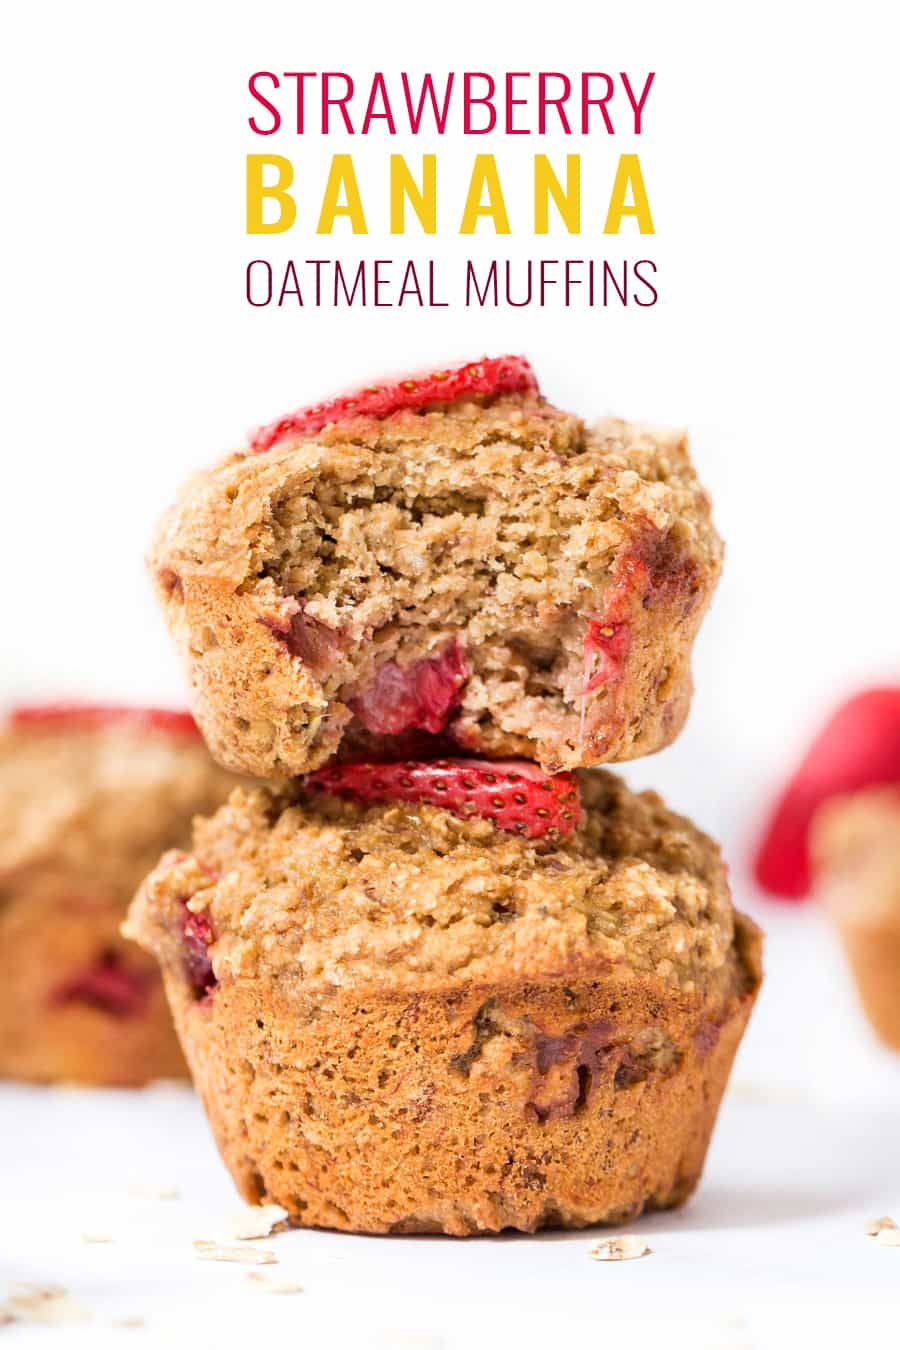 STRAWBERRY BANANA OATMEAL MUFFINS -- made with oat flour, almond flour and sweetened naturally with bananas and coconut sugar! [oil-free, gluten-free, dairy-free, vegan]